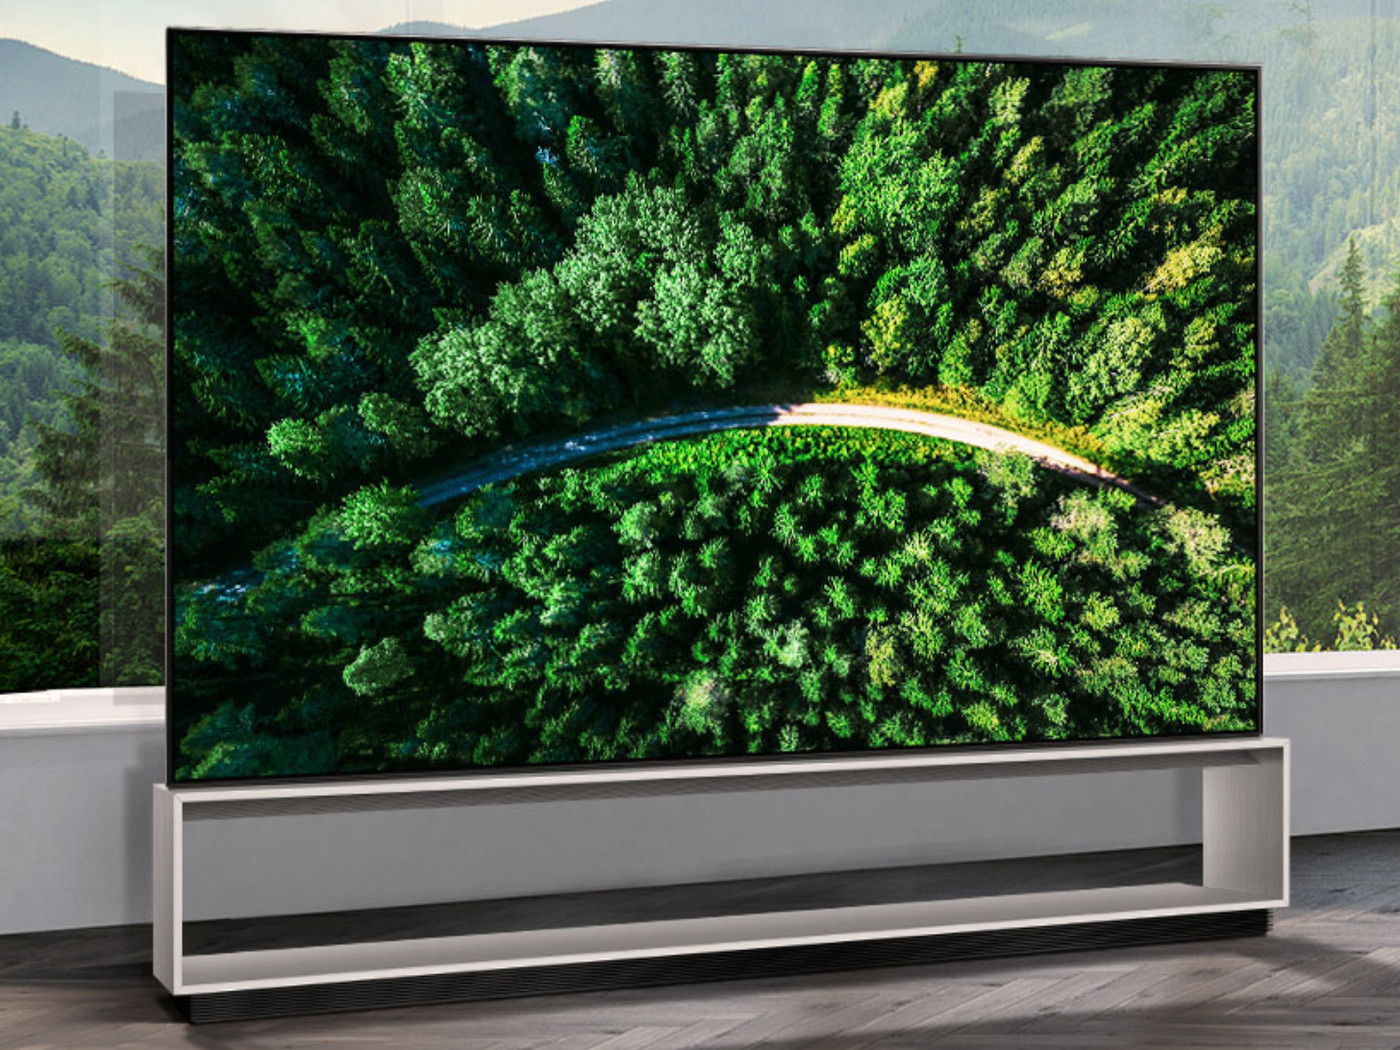 TVs at CES 2019: 8K is still just a fantasy - The Verge